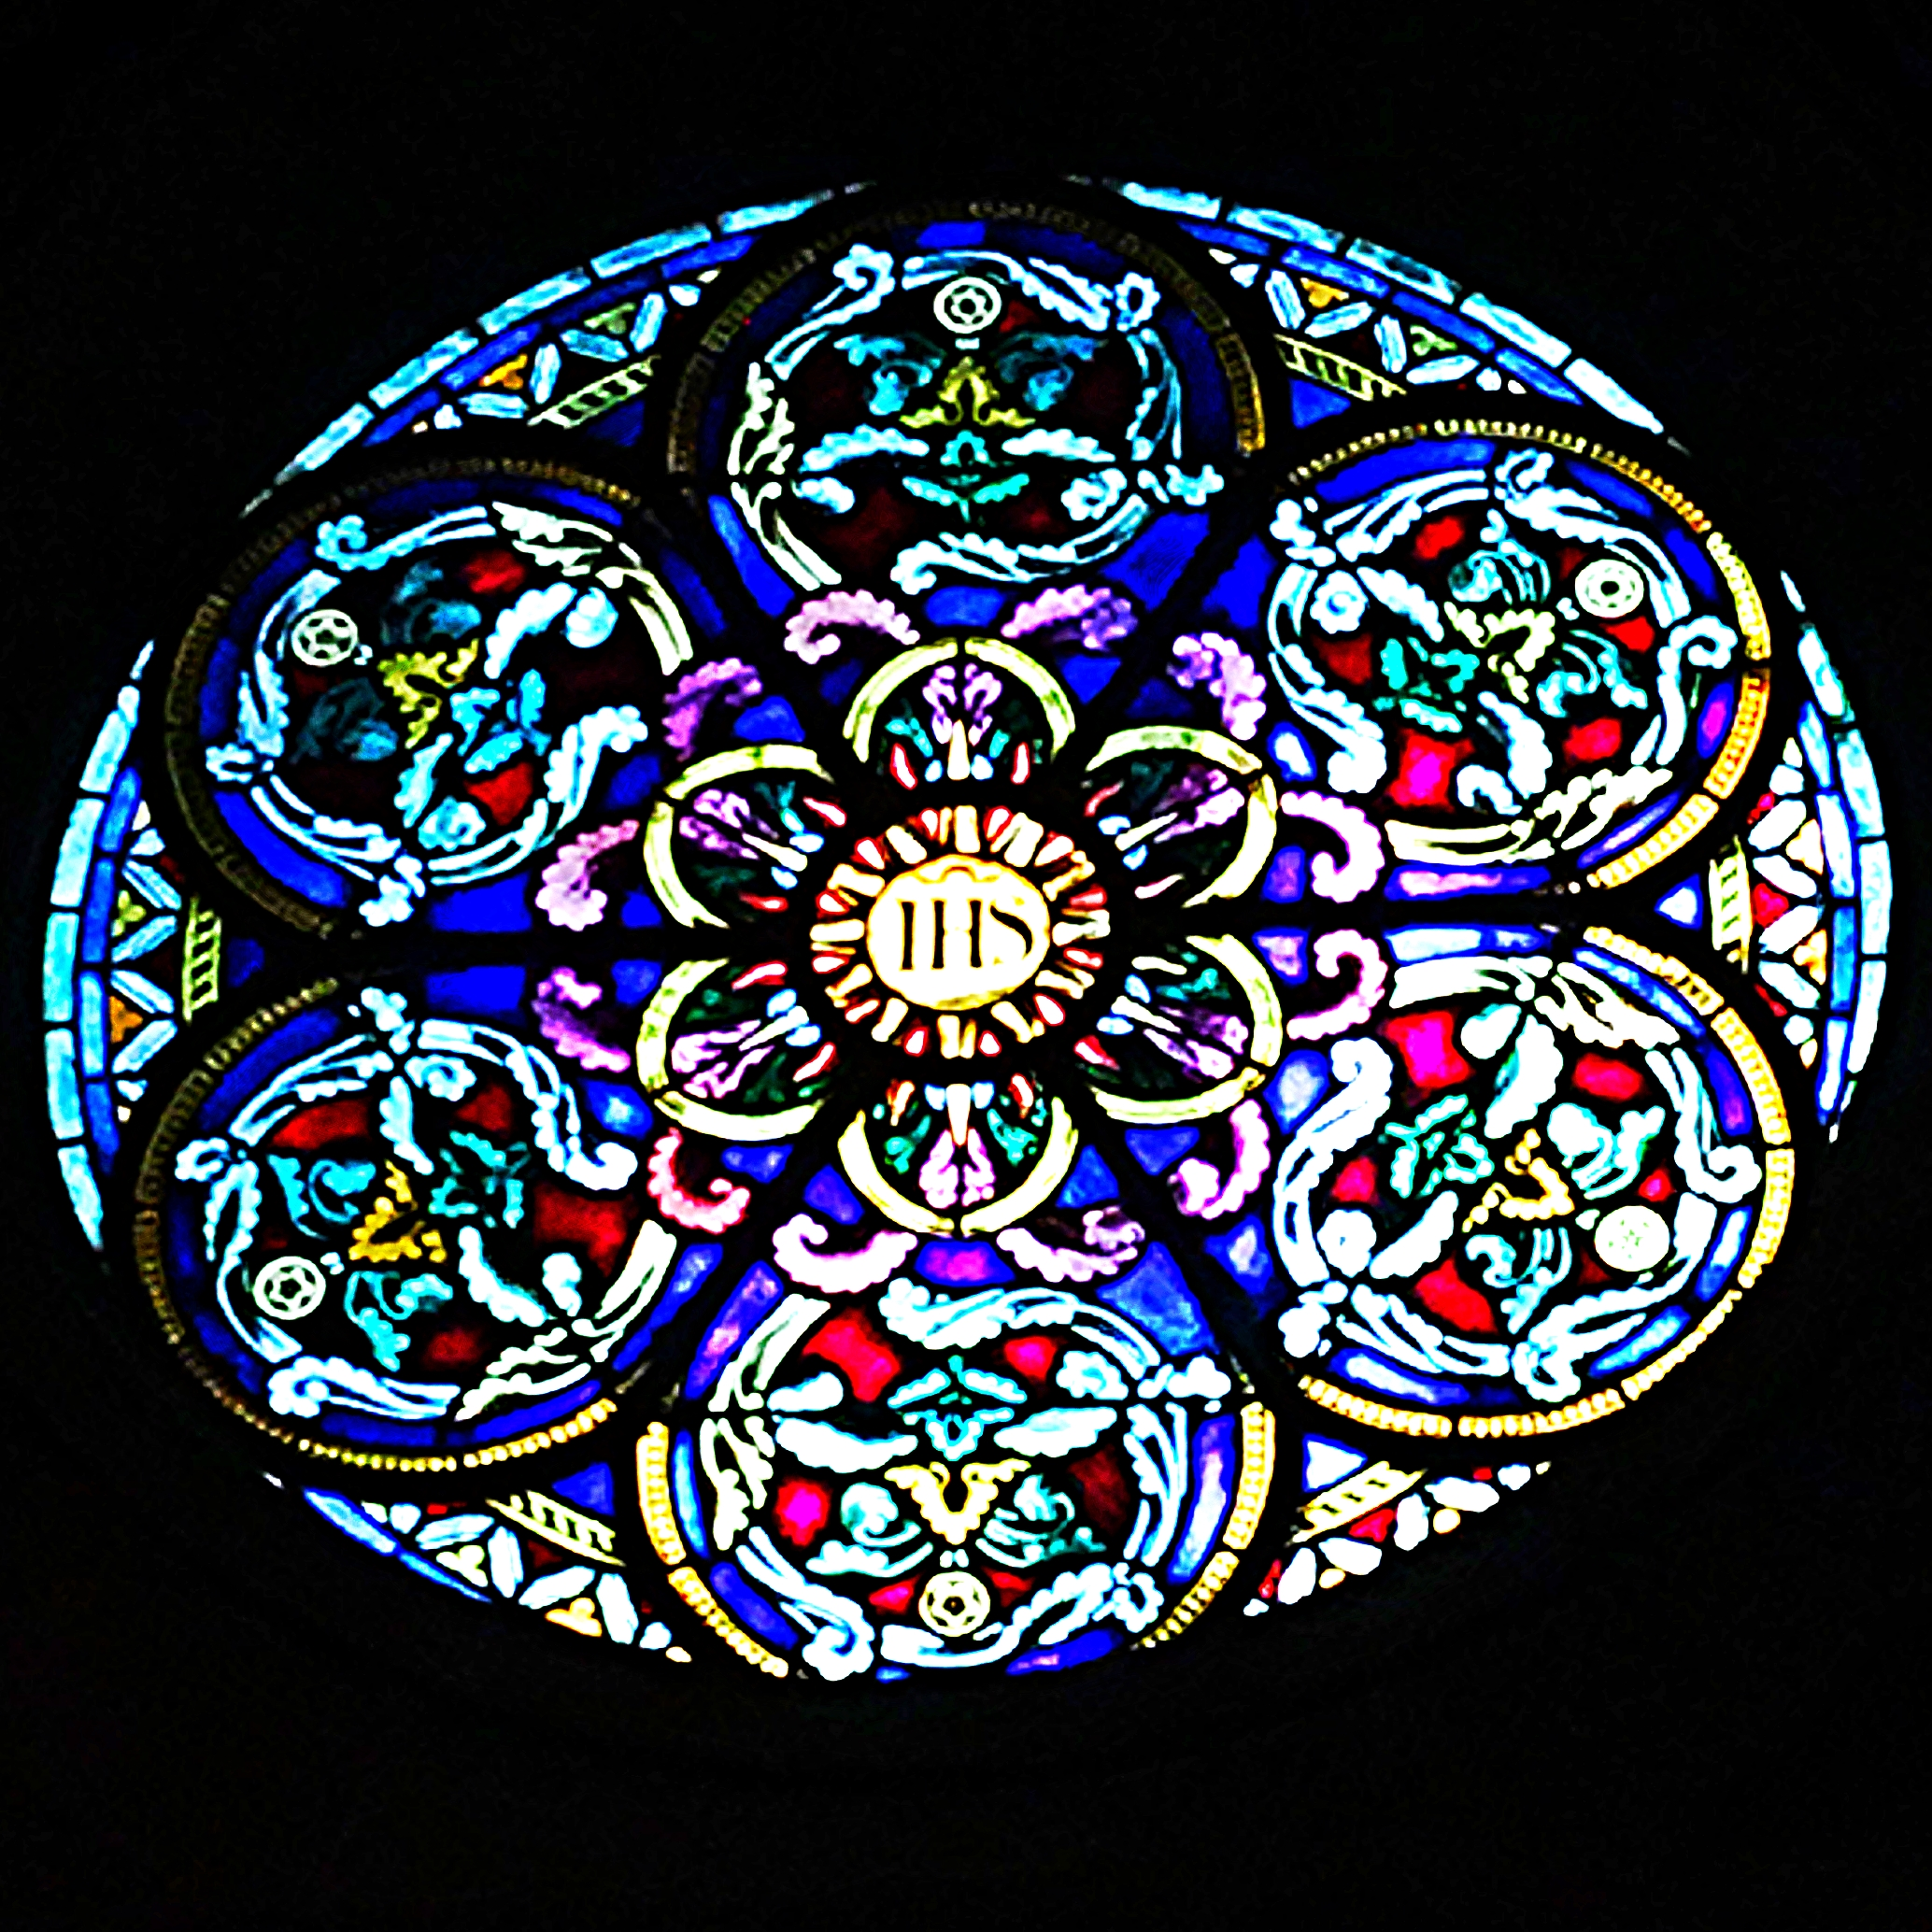 Stained glass. Always a nice touch.